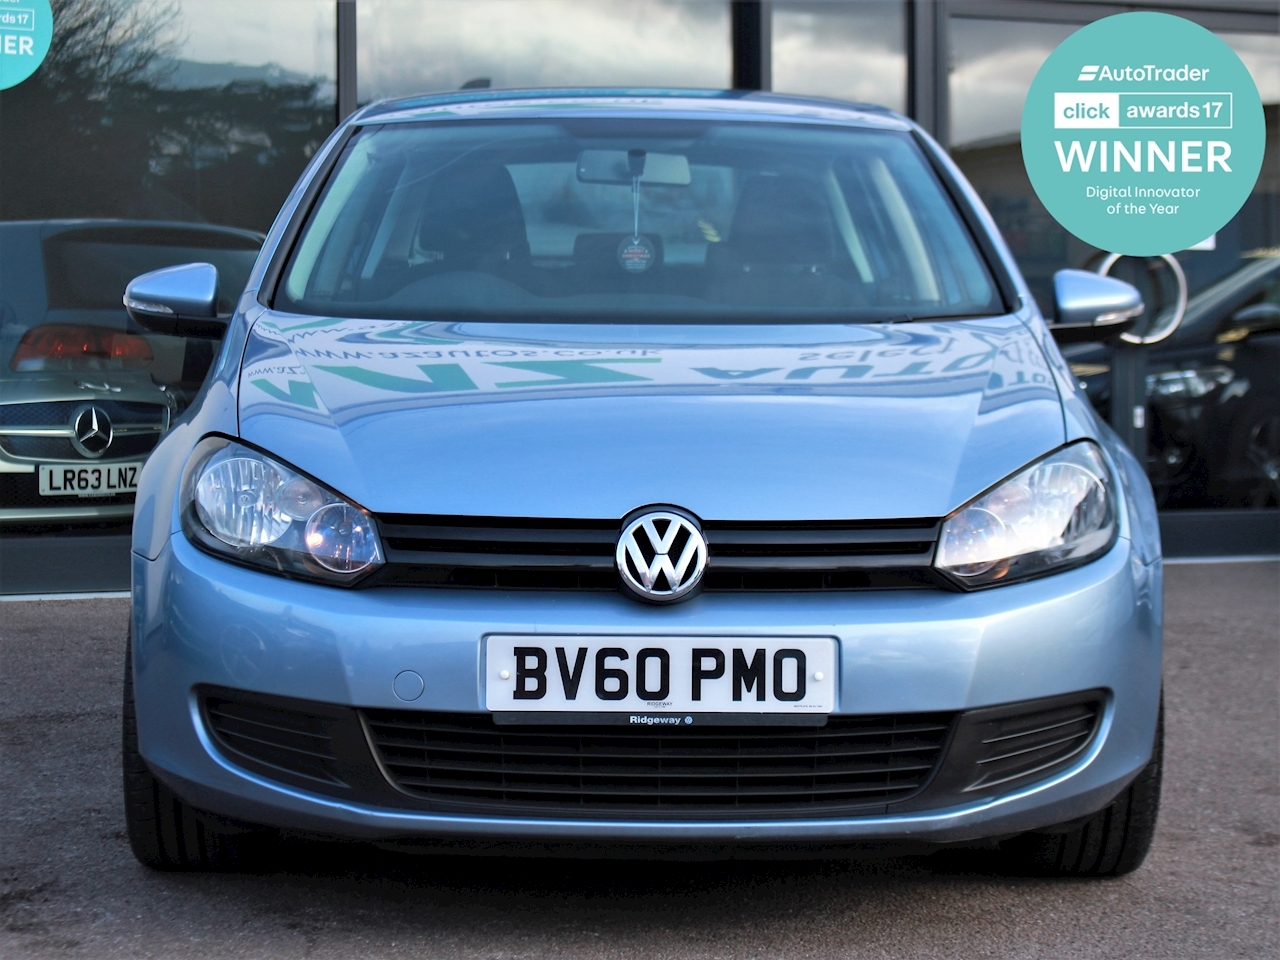 Volkswagen Golf S Tdi - Large 1